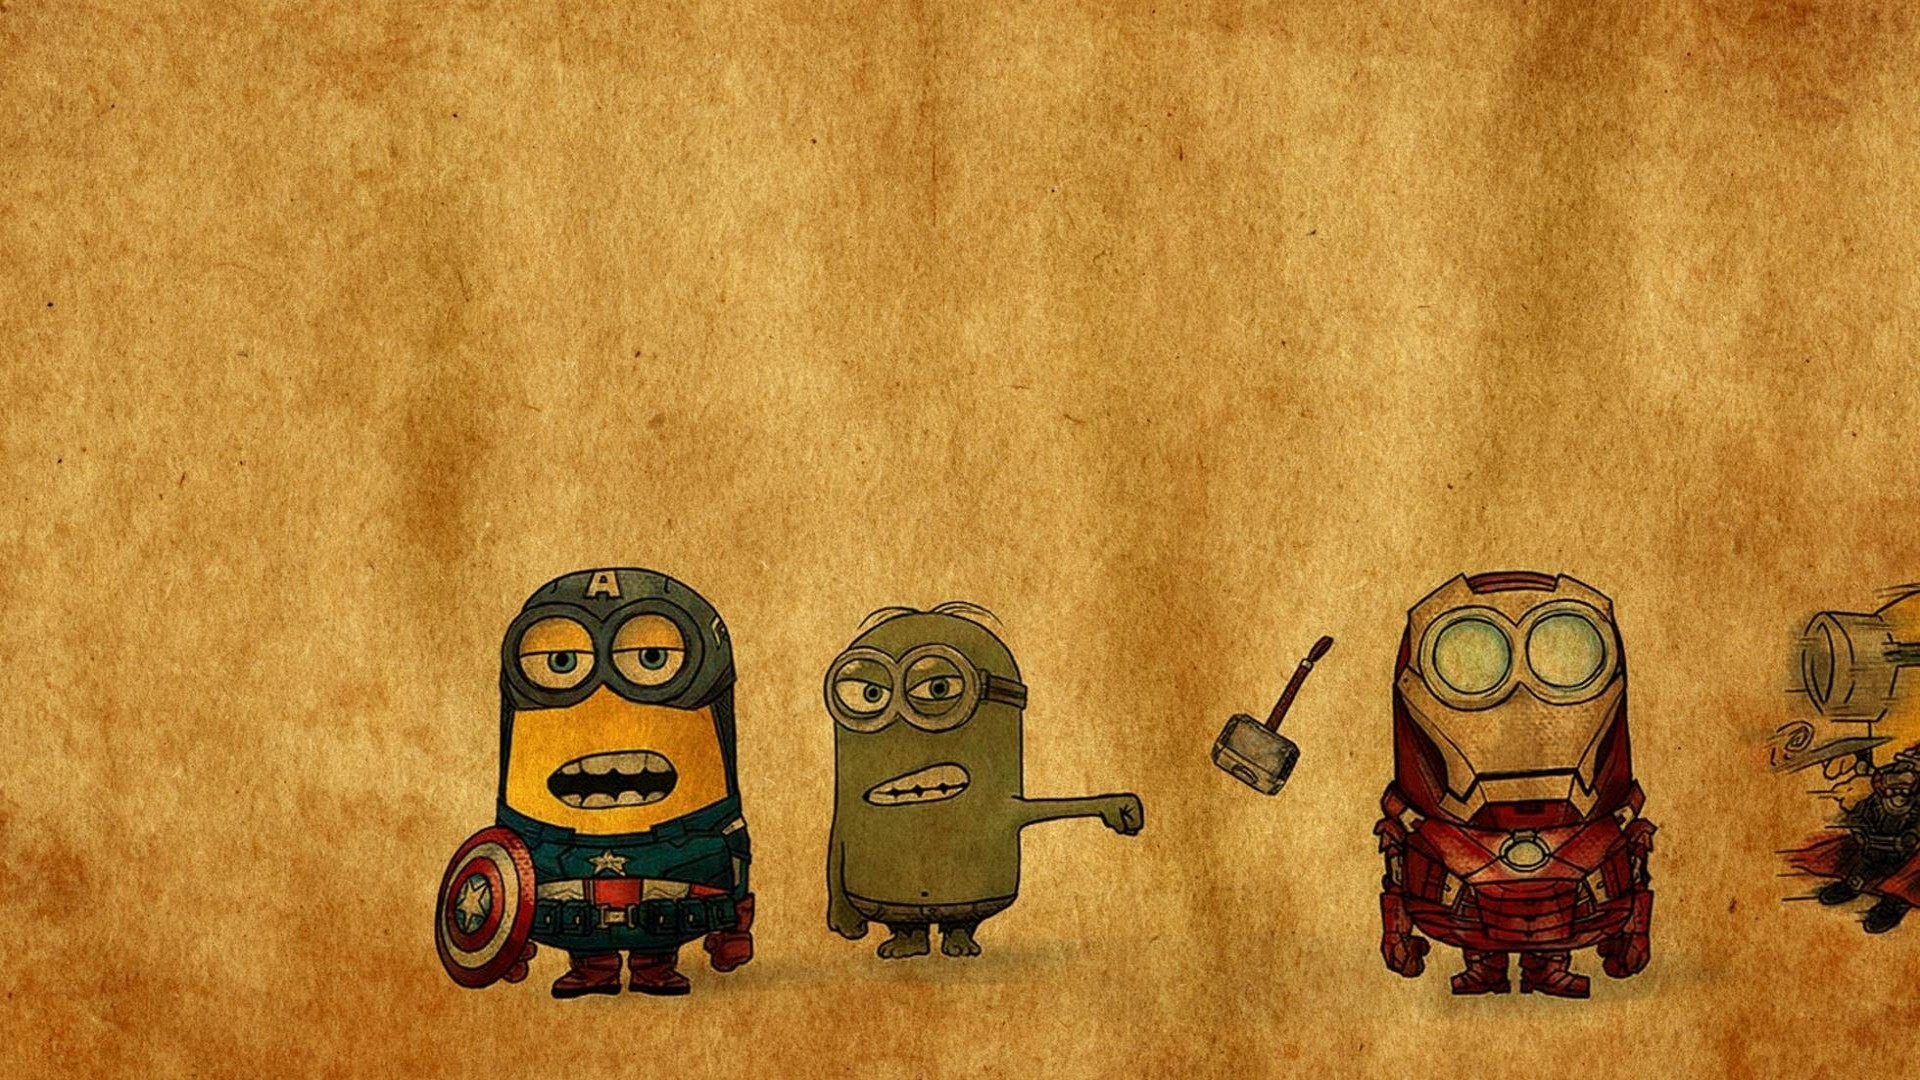 1920x1080 Cute Minion Wallpapers HD for Desktop (20)